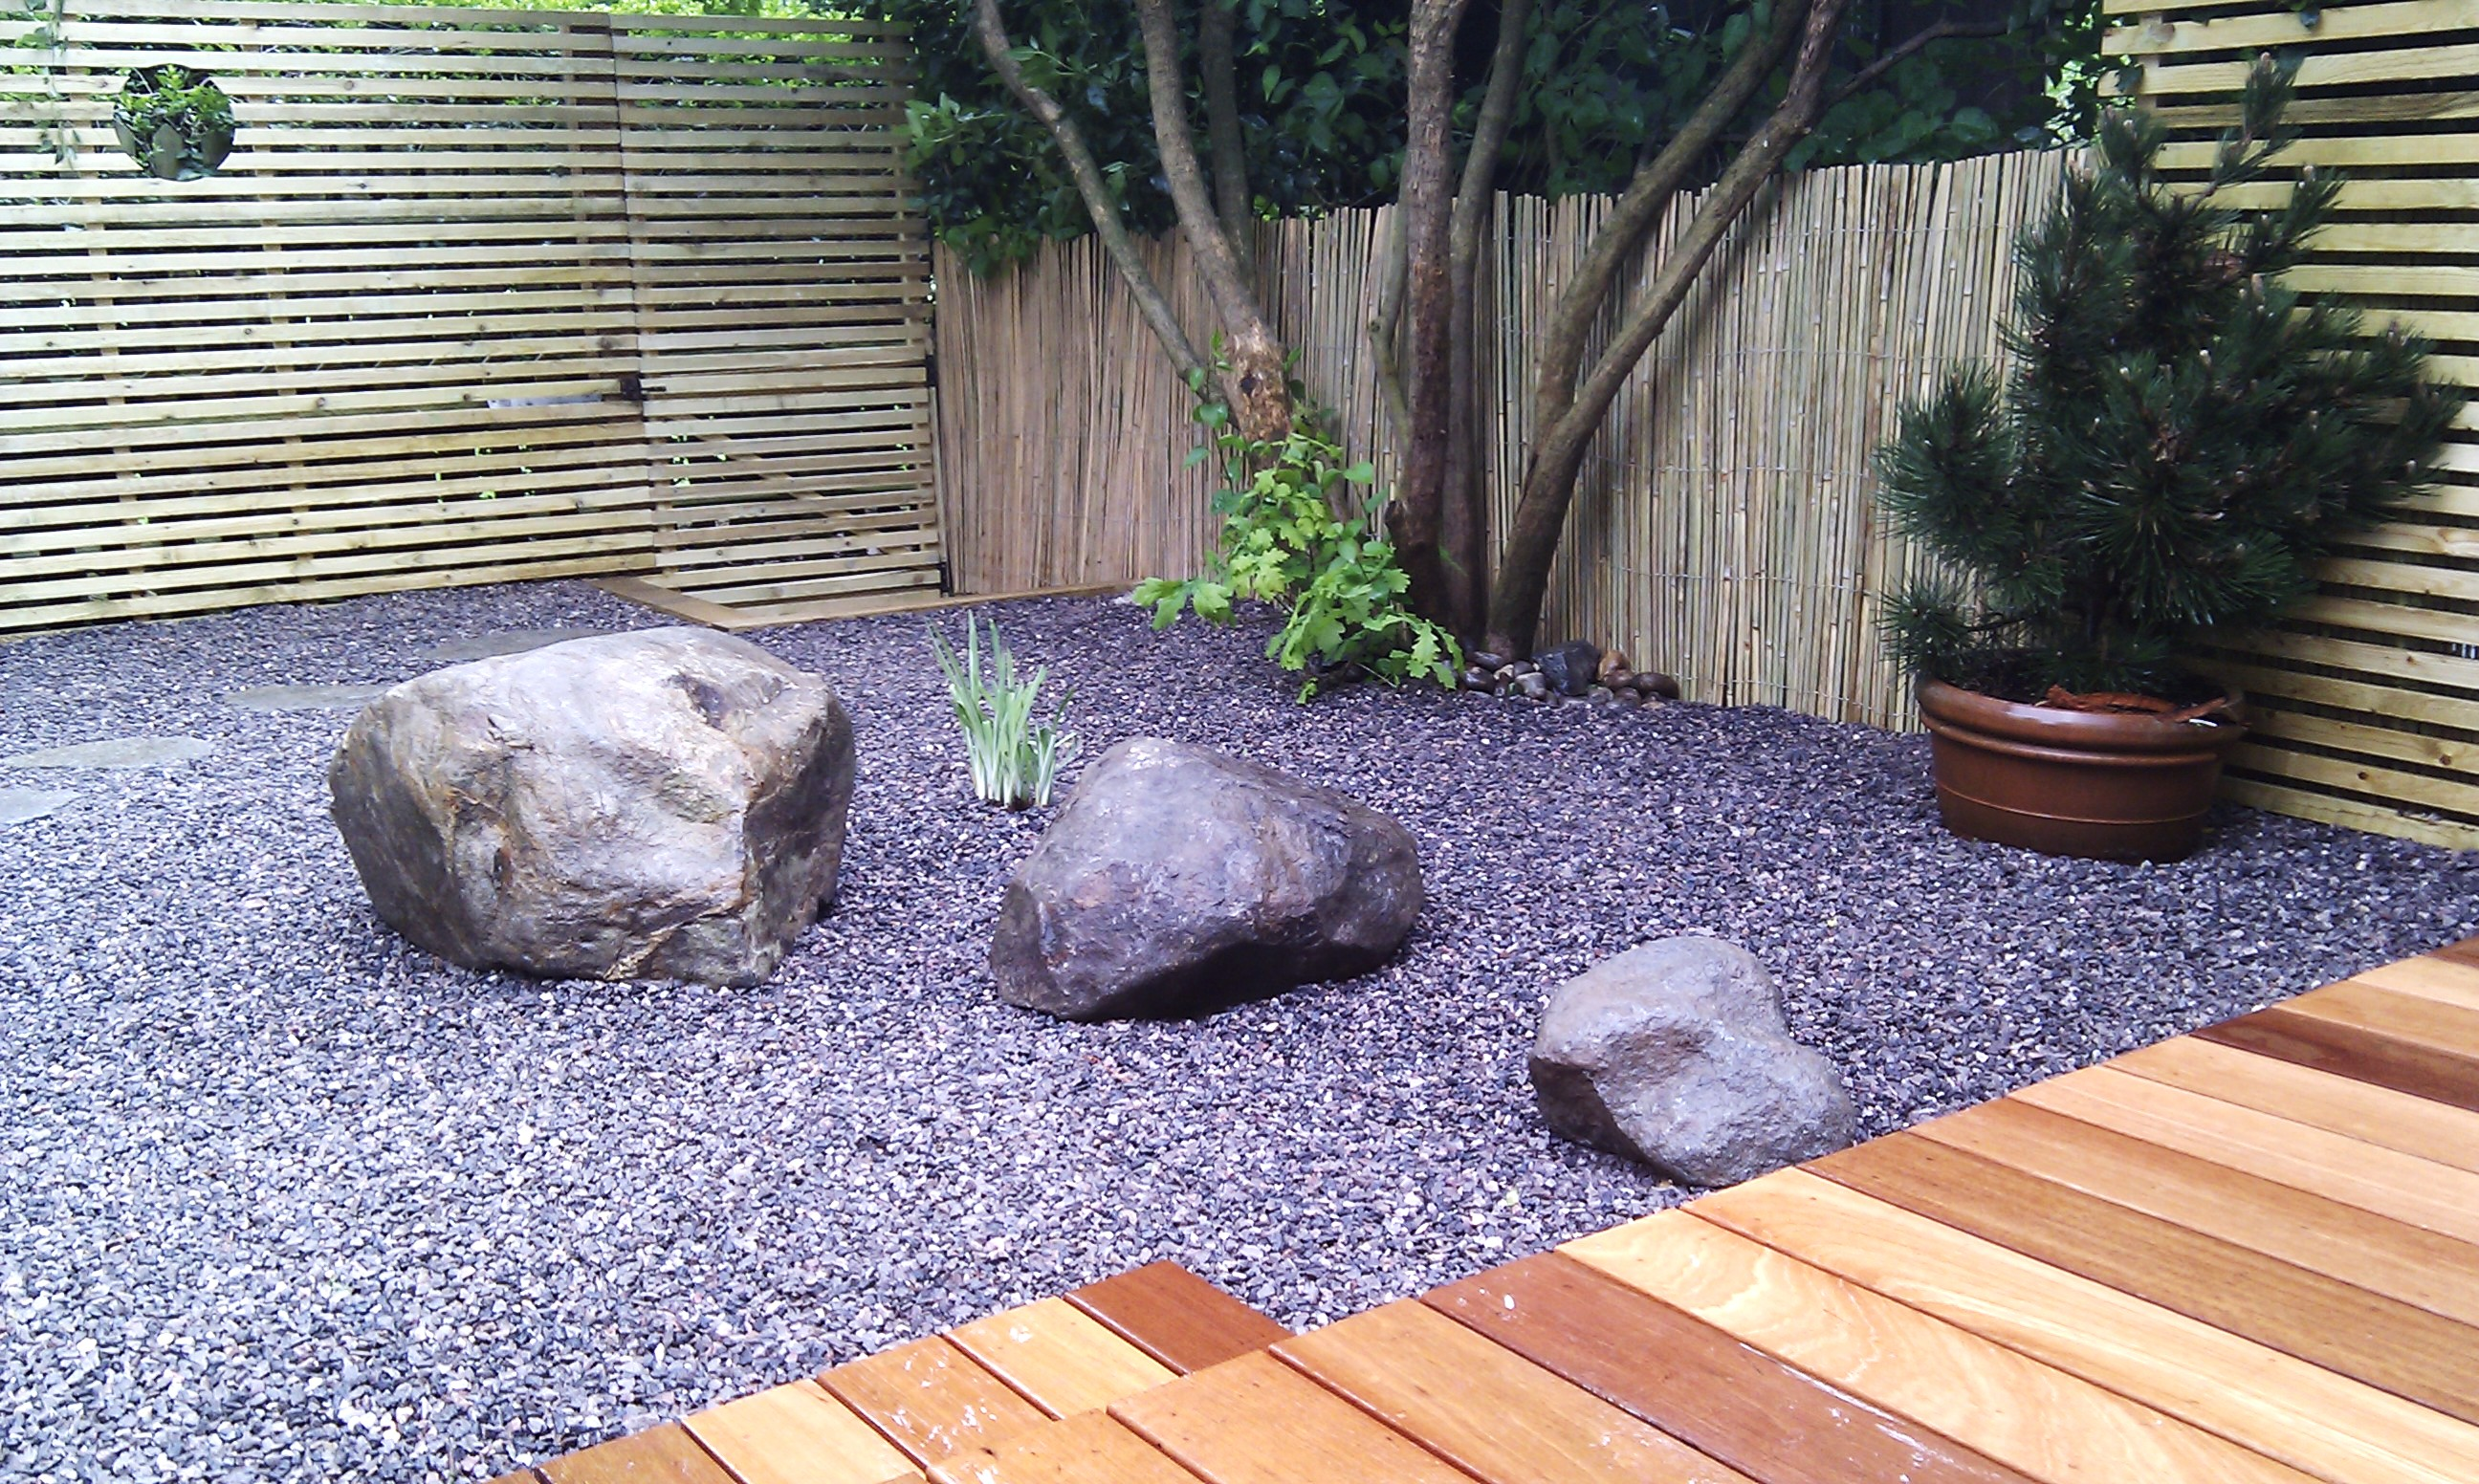 hardwood decking minimalist limestone chippings privacy screen south east london (27)